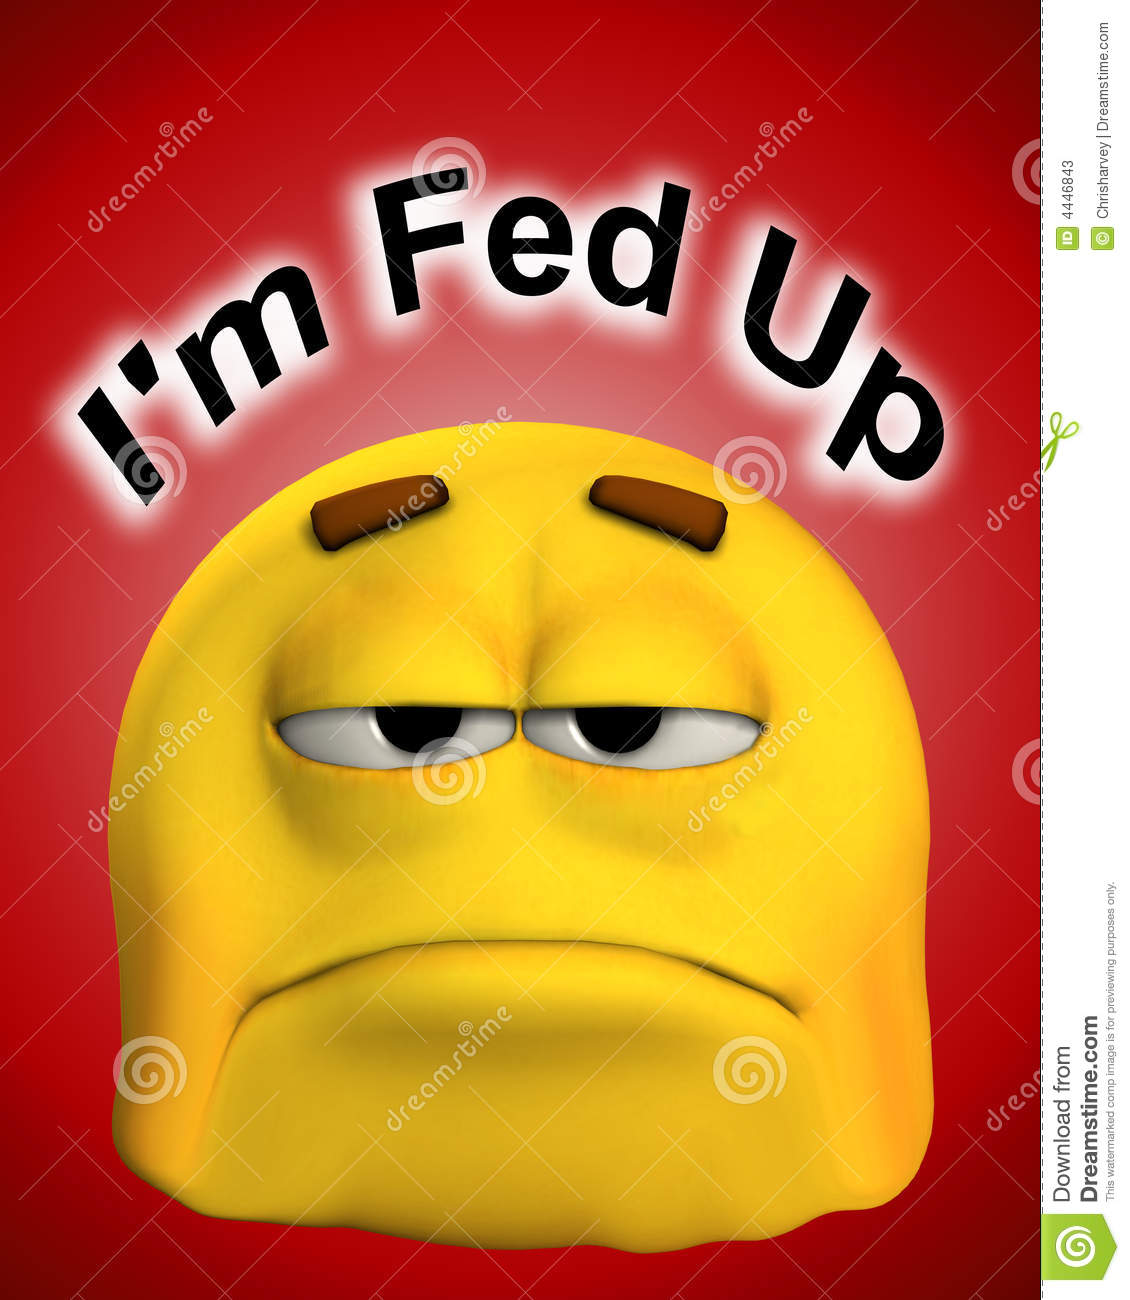 Fed Up Stock Photos Image 4446843